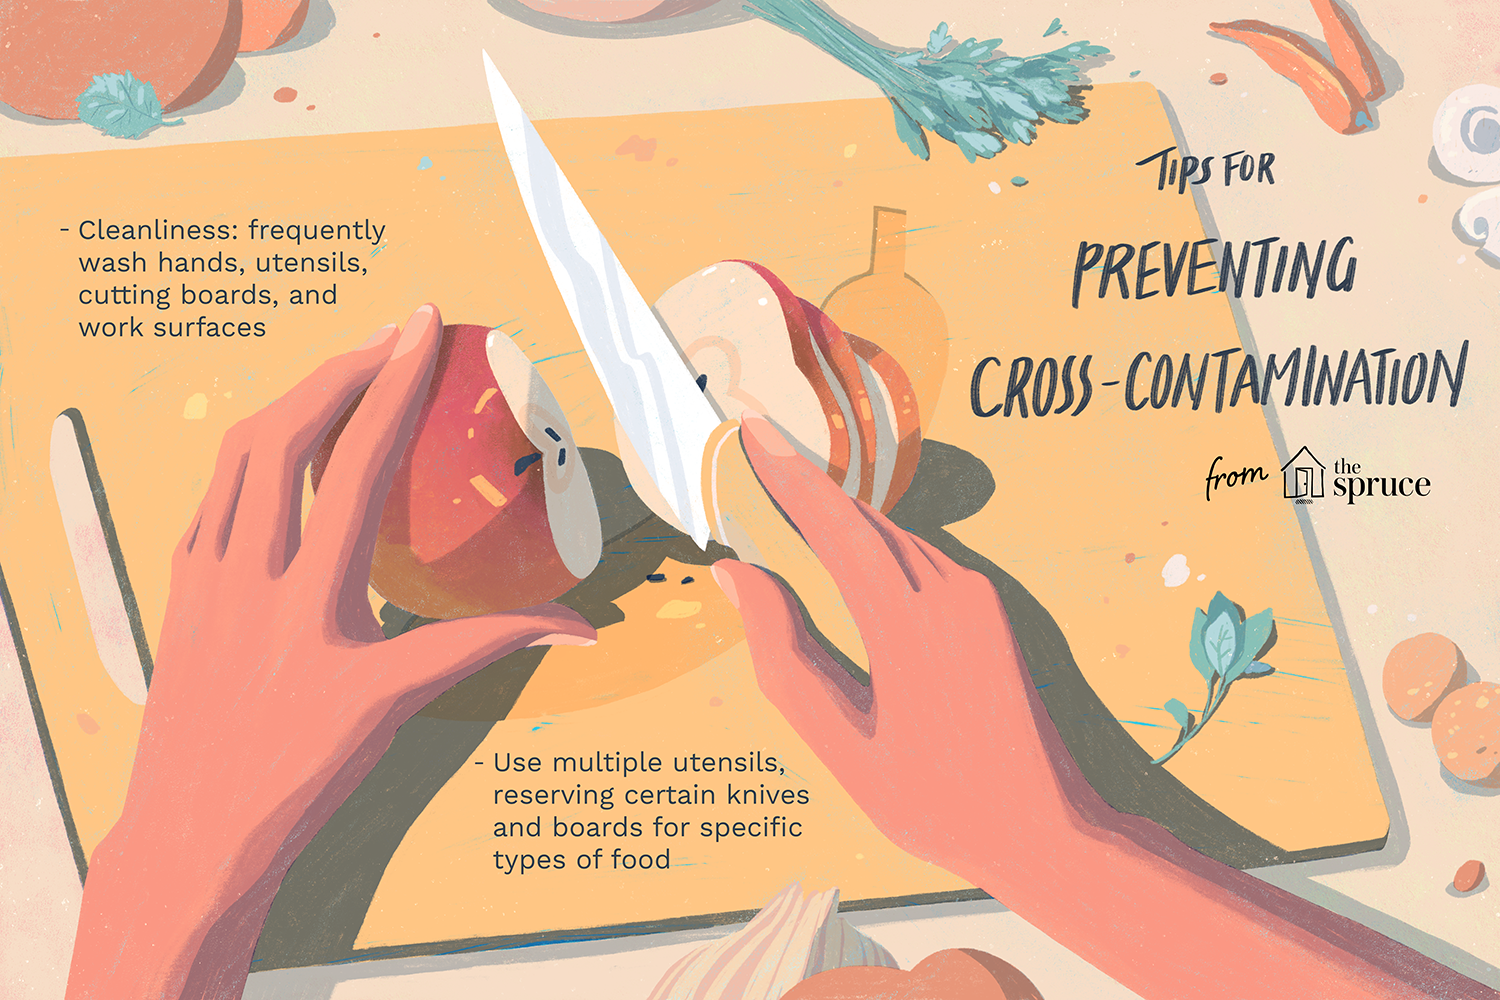 Cross-Contamination-and-How-to-Prevent-It-995635-V2.png